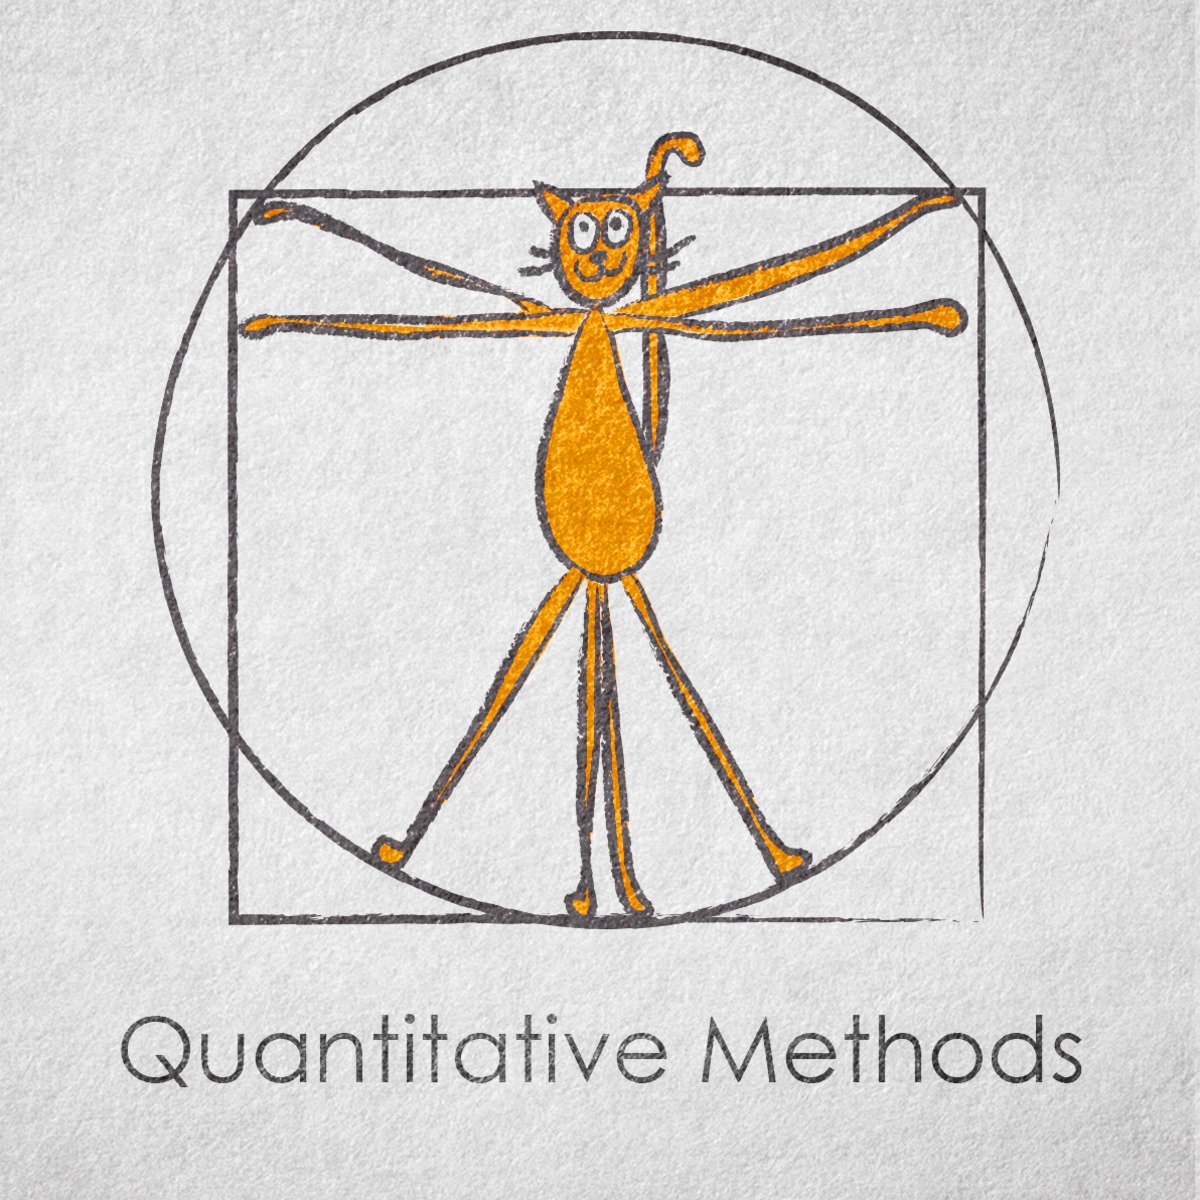 Quantitative Methods course image